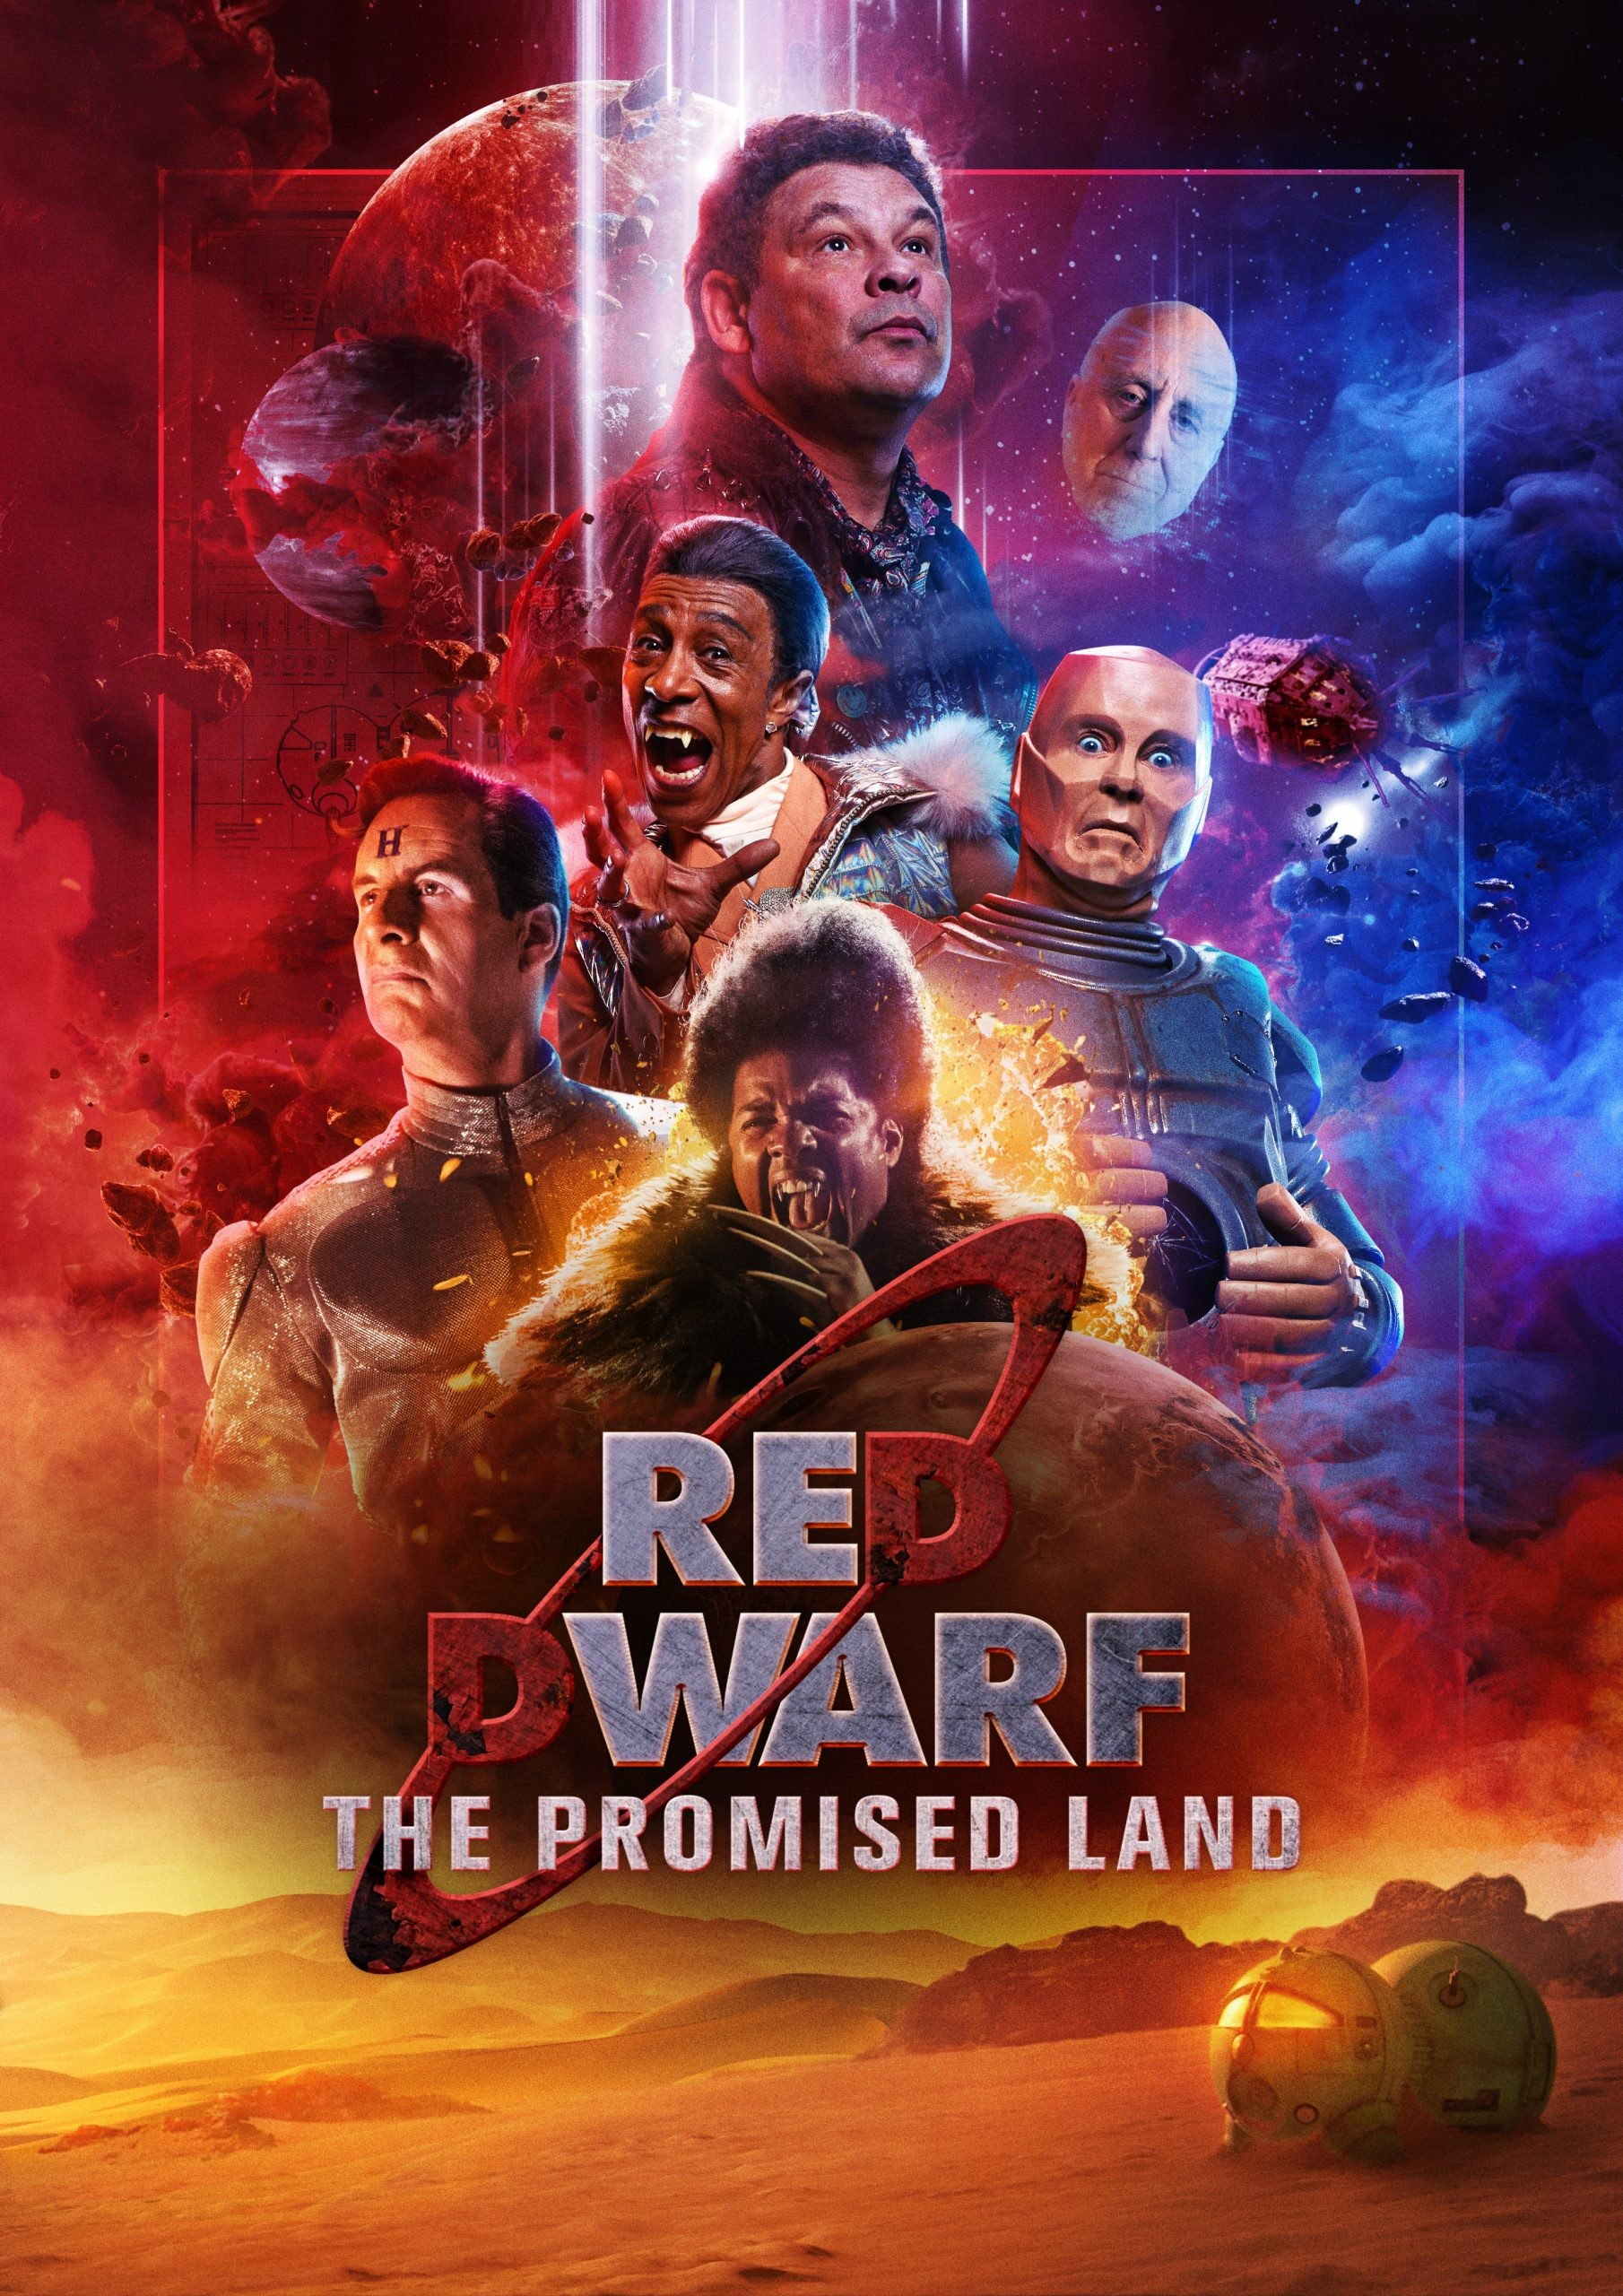 Red Dwarf: The Promised Land poster